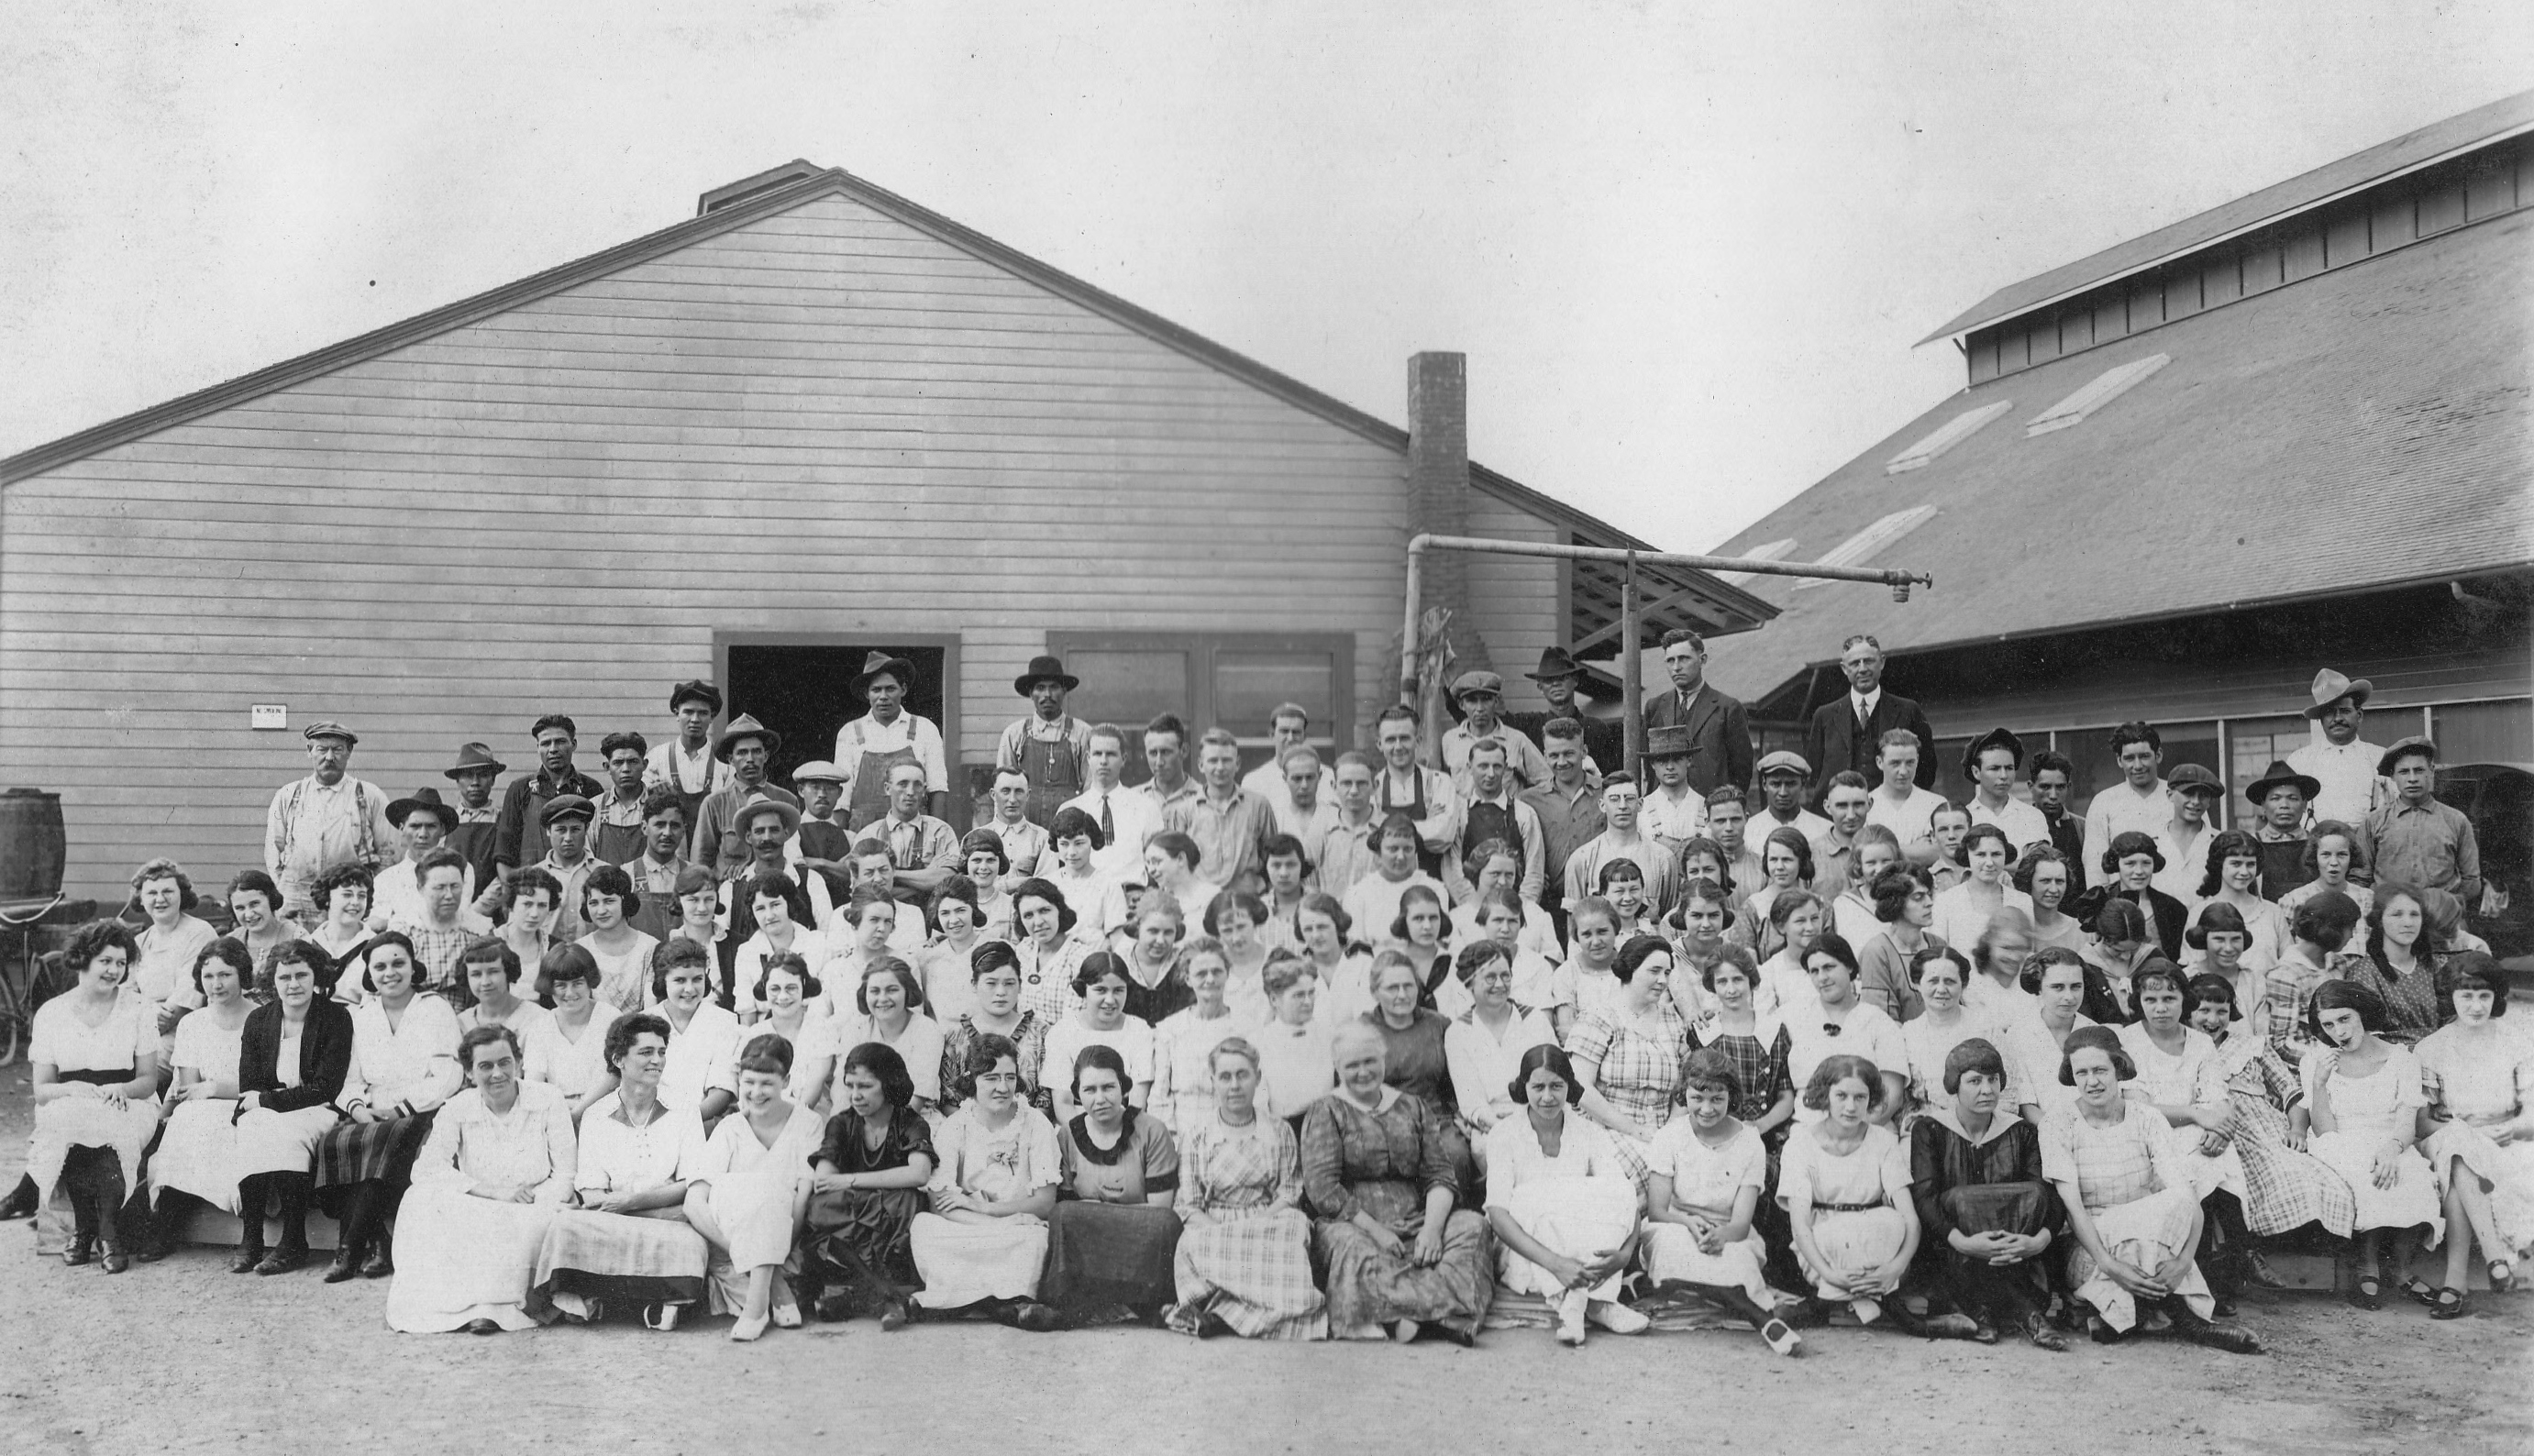 Wo/Men At Work: Hewes Packing House, El Modena, Orange, Ca. Early 1920s